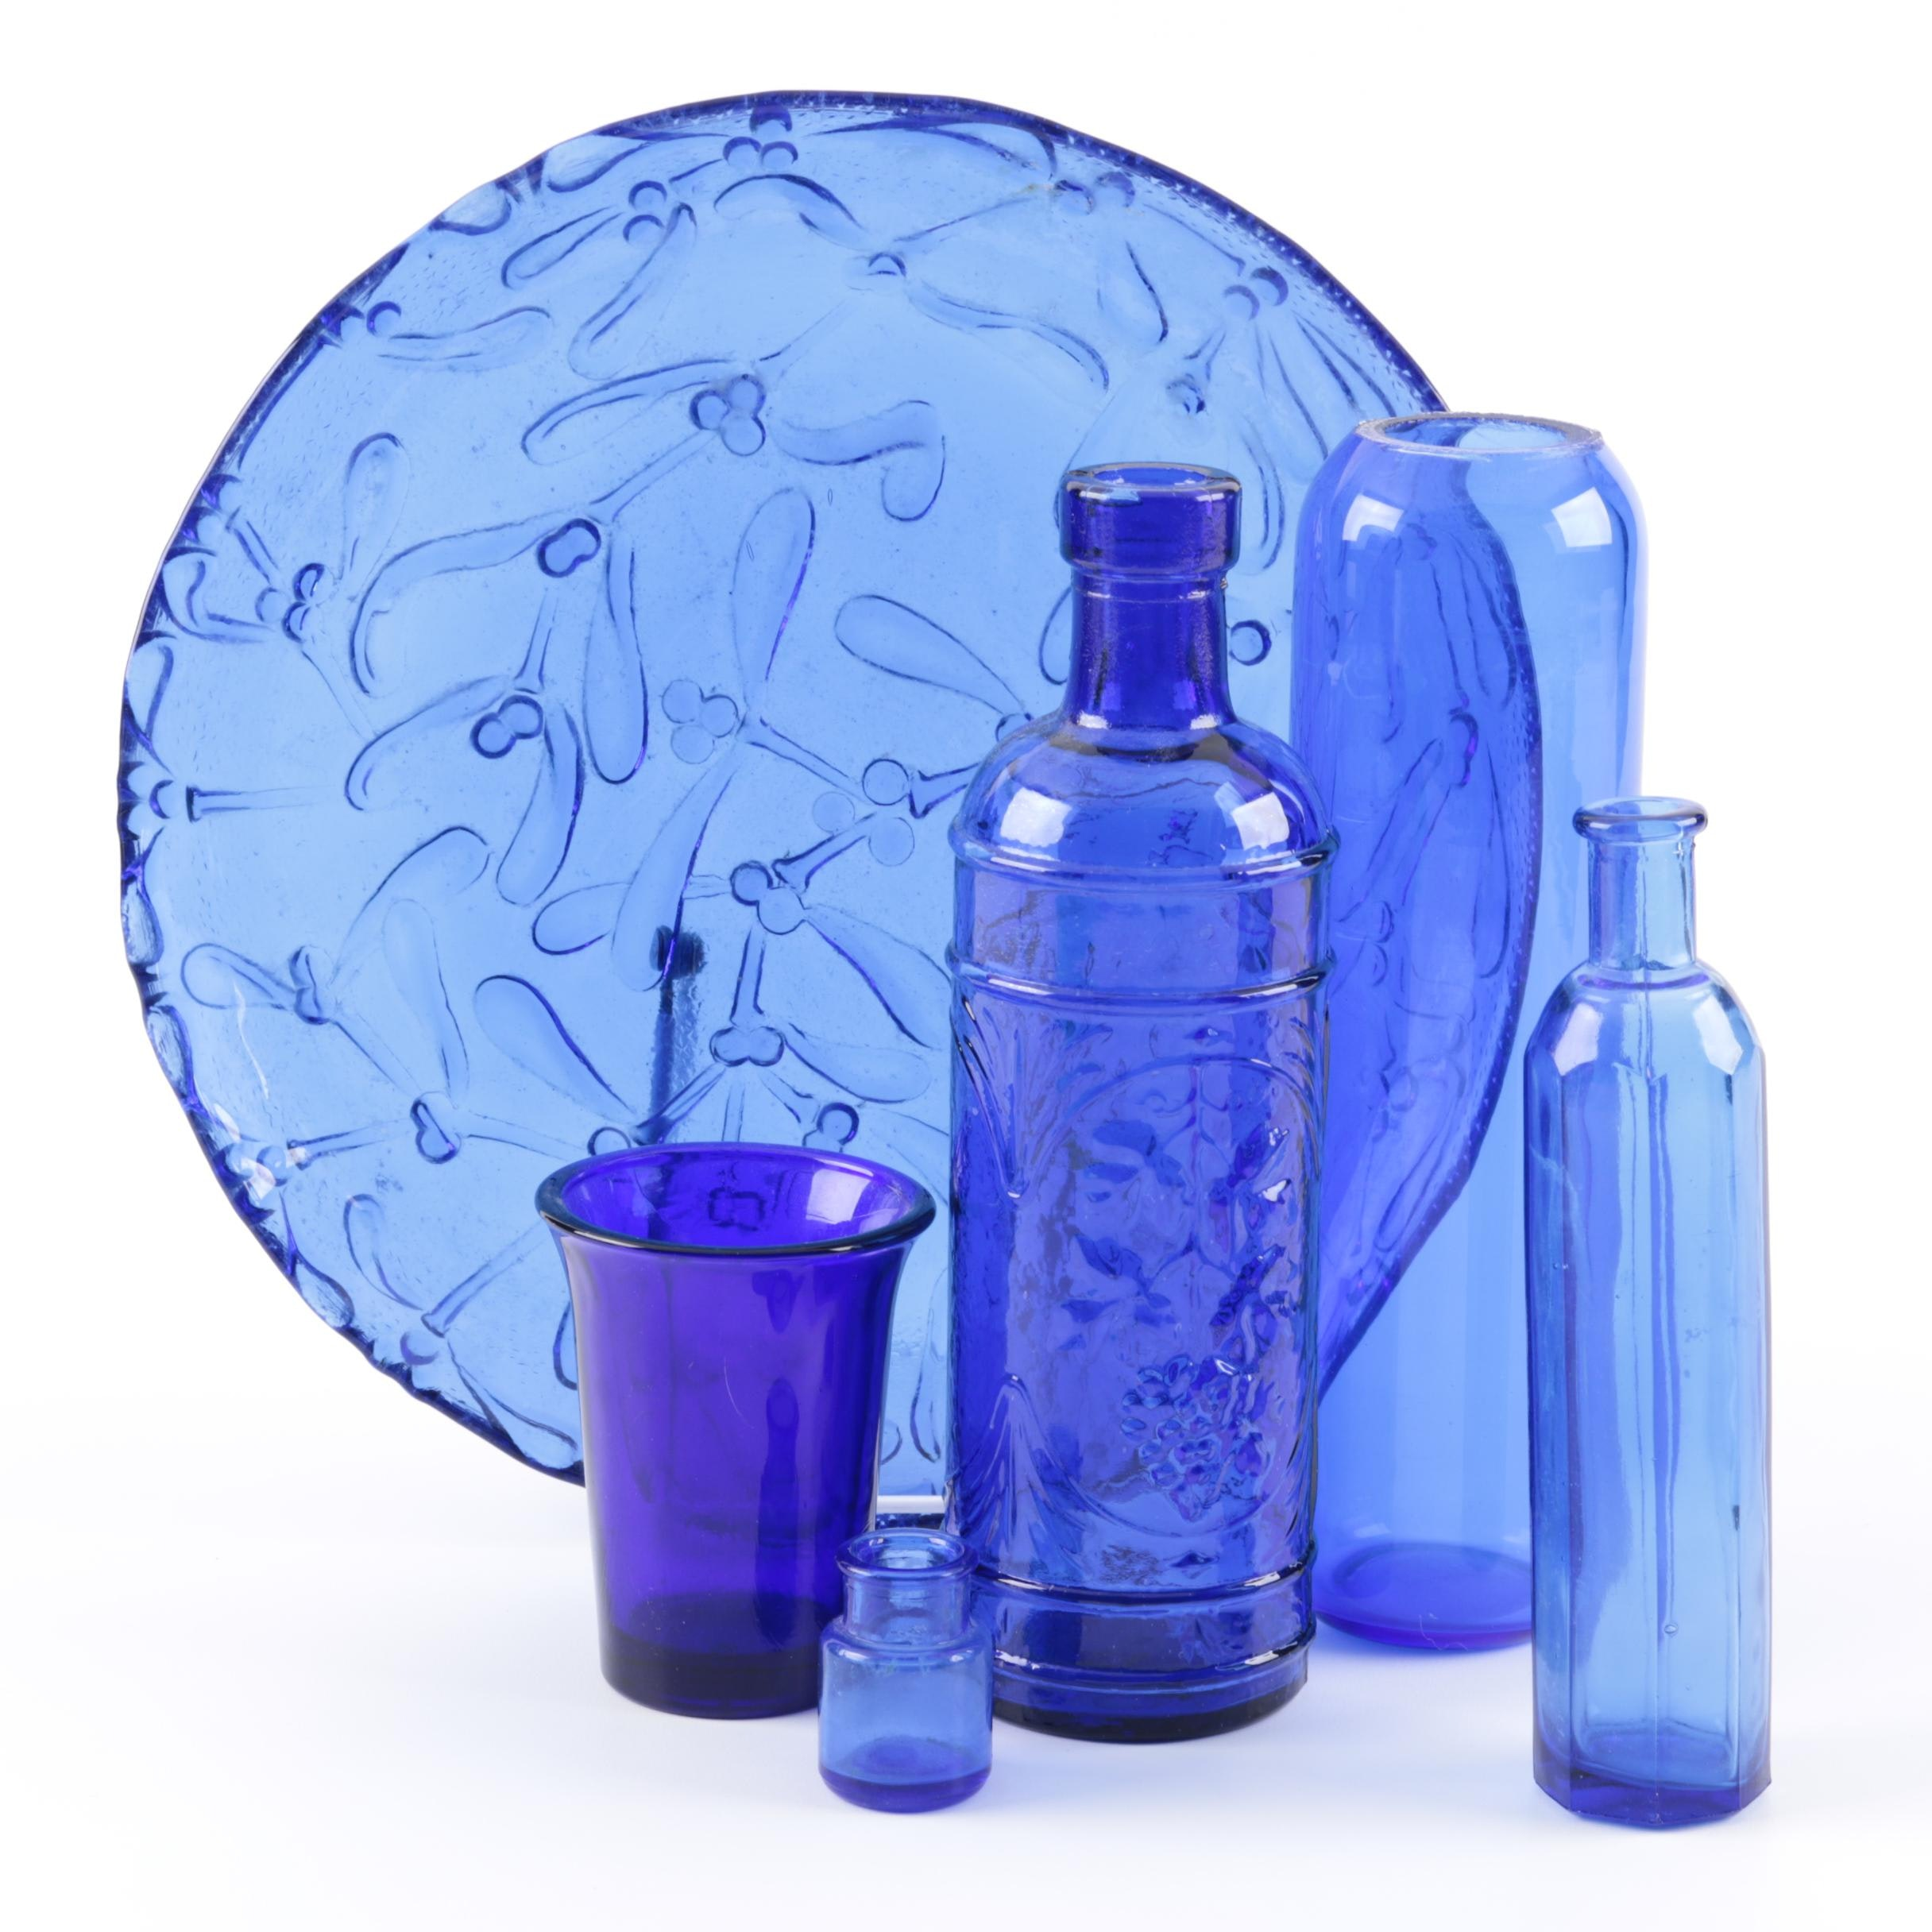 Blue Glass Bottles and Plate